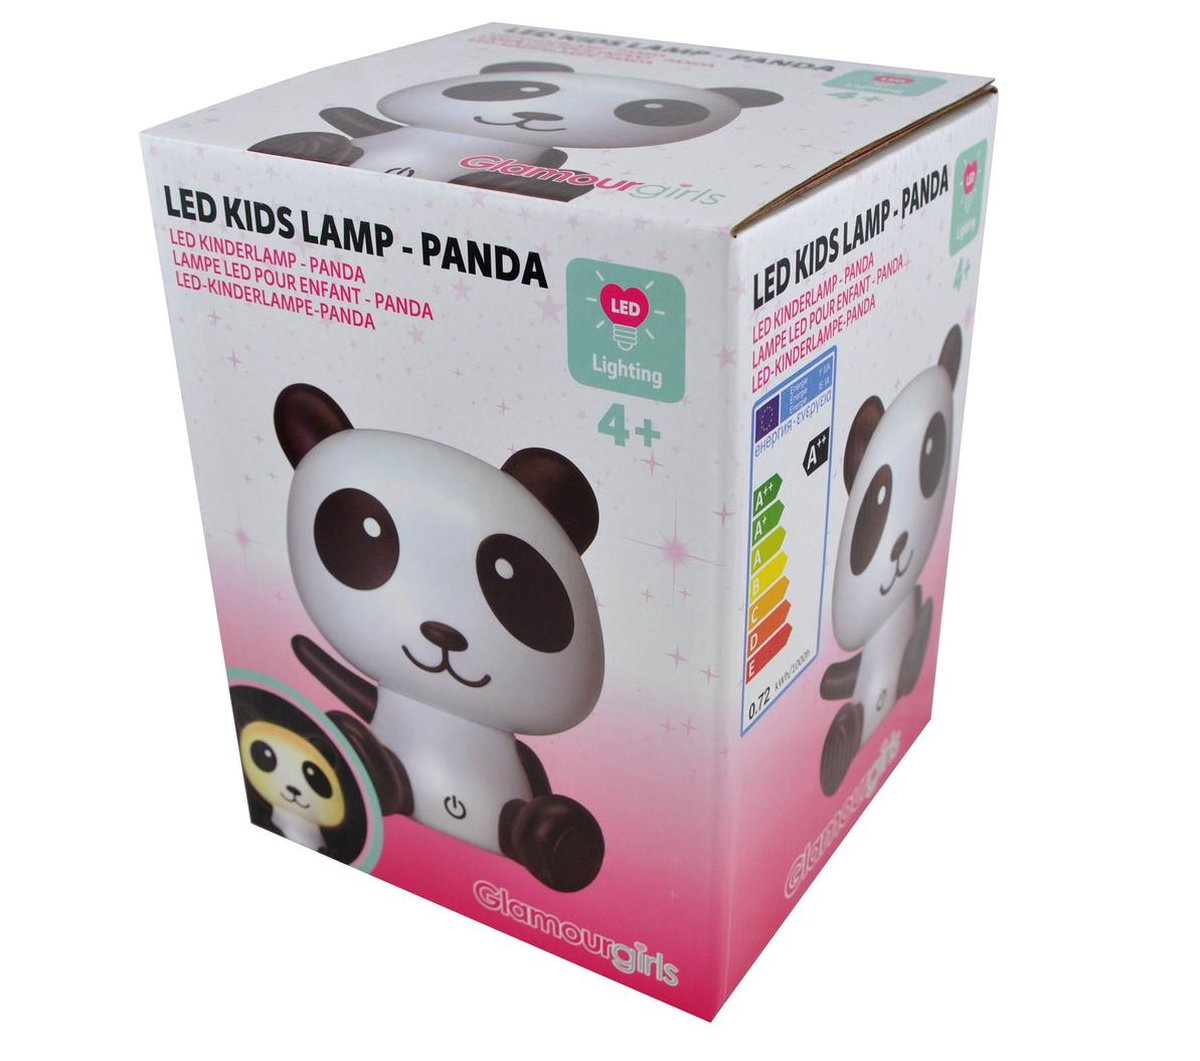 Bol Com Glamour Girls Led Kinderlamp Panda